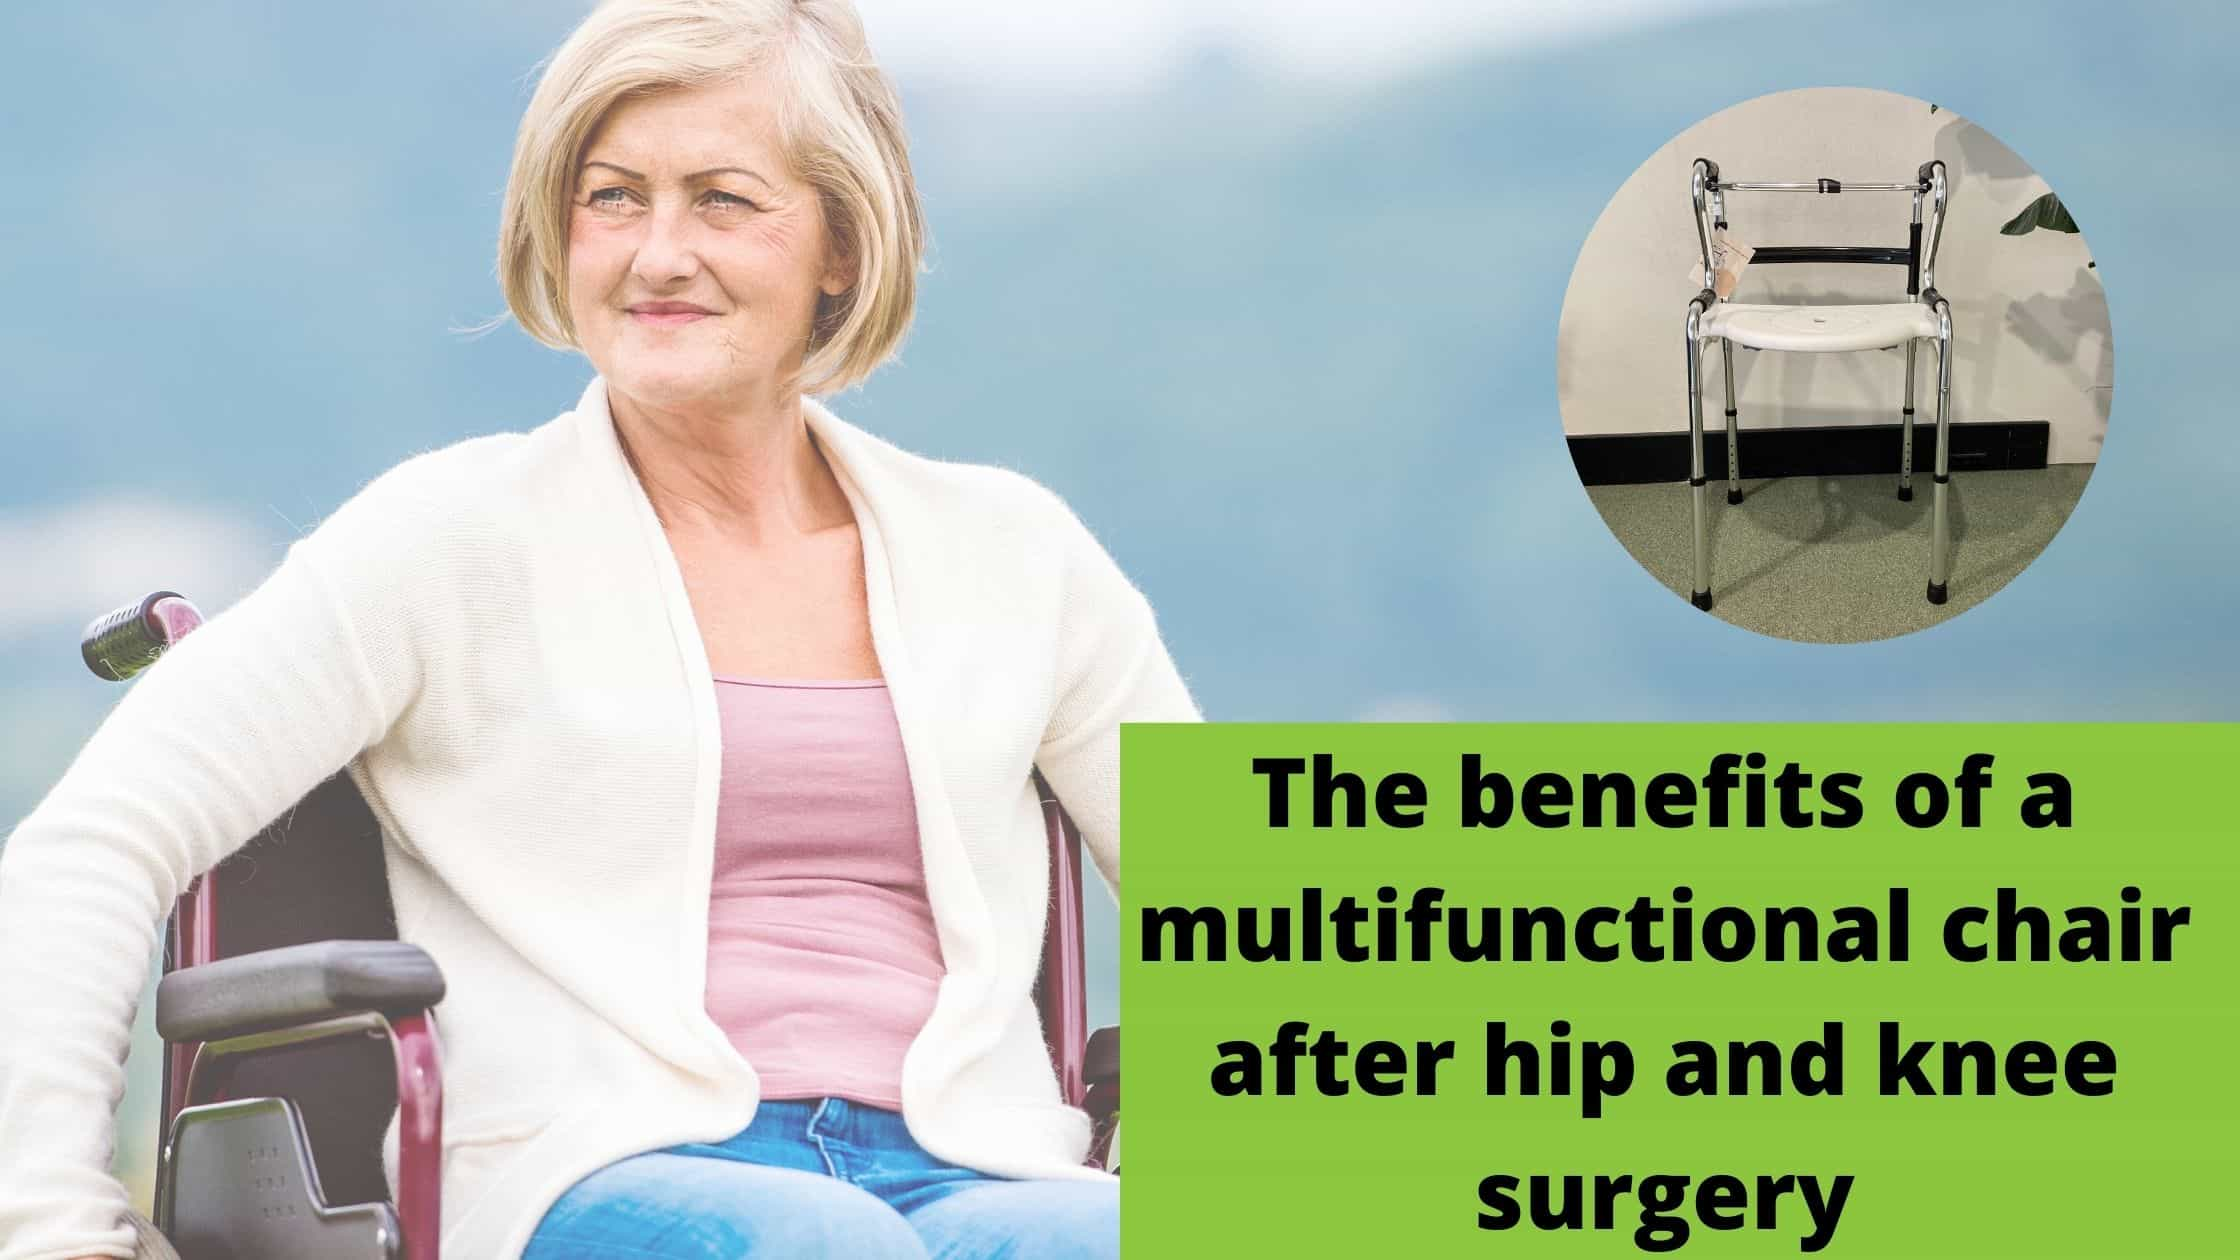 The benefits of the Multifunctional Chair after hip or knee surgery